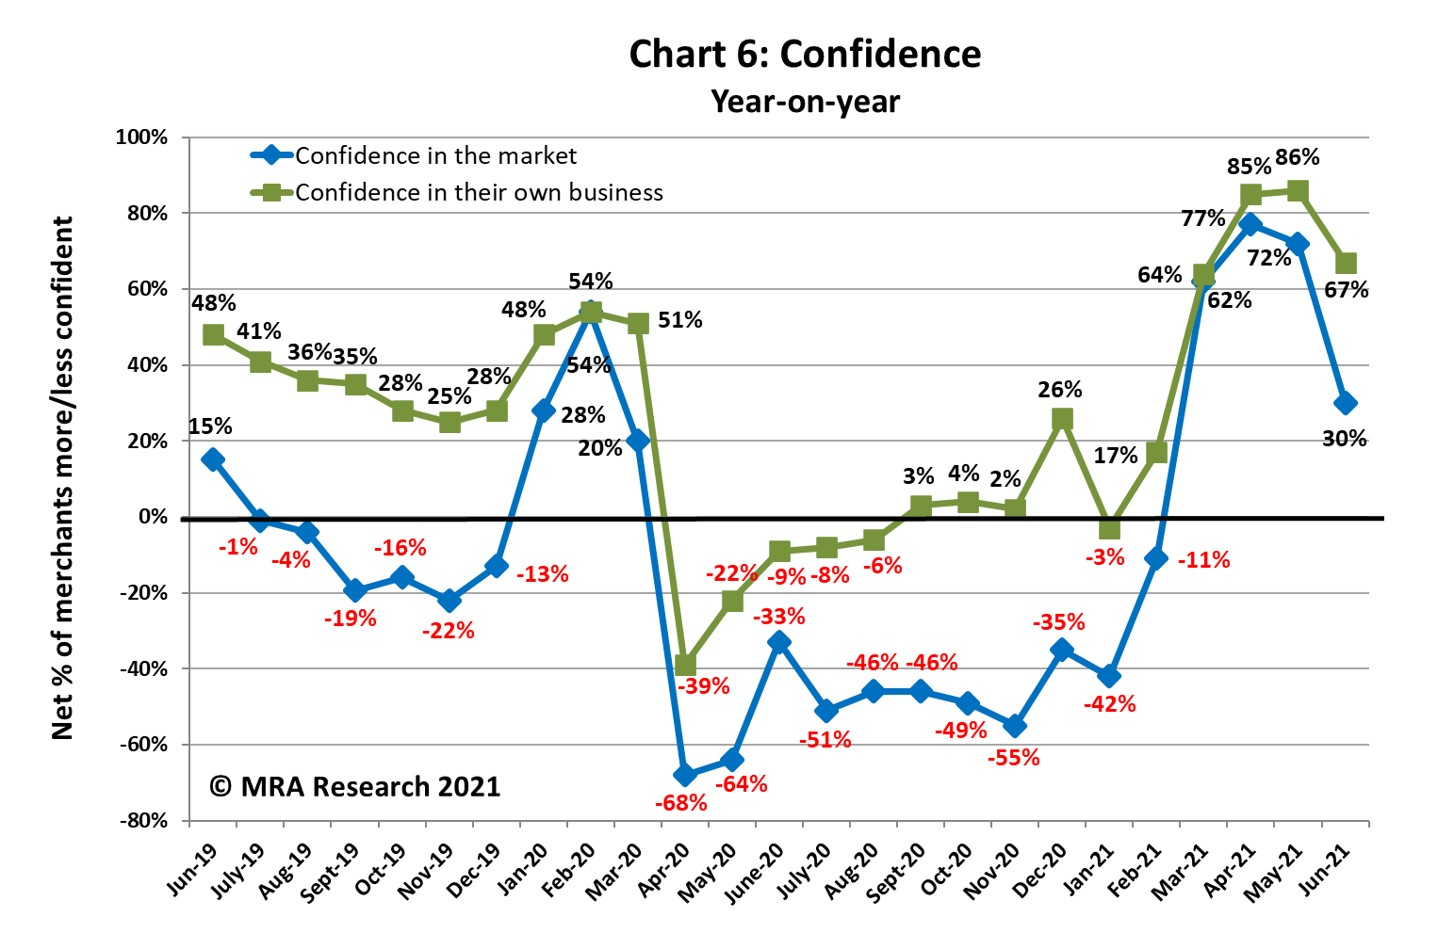 Year-on-year, confidence in the market dropped sharply compared to the previous month's survey, but merchants remain positive (net +30%)